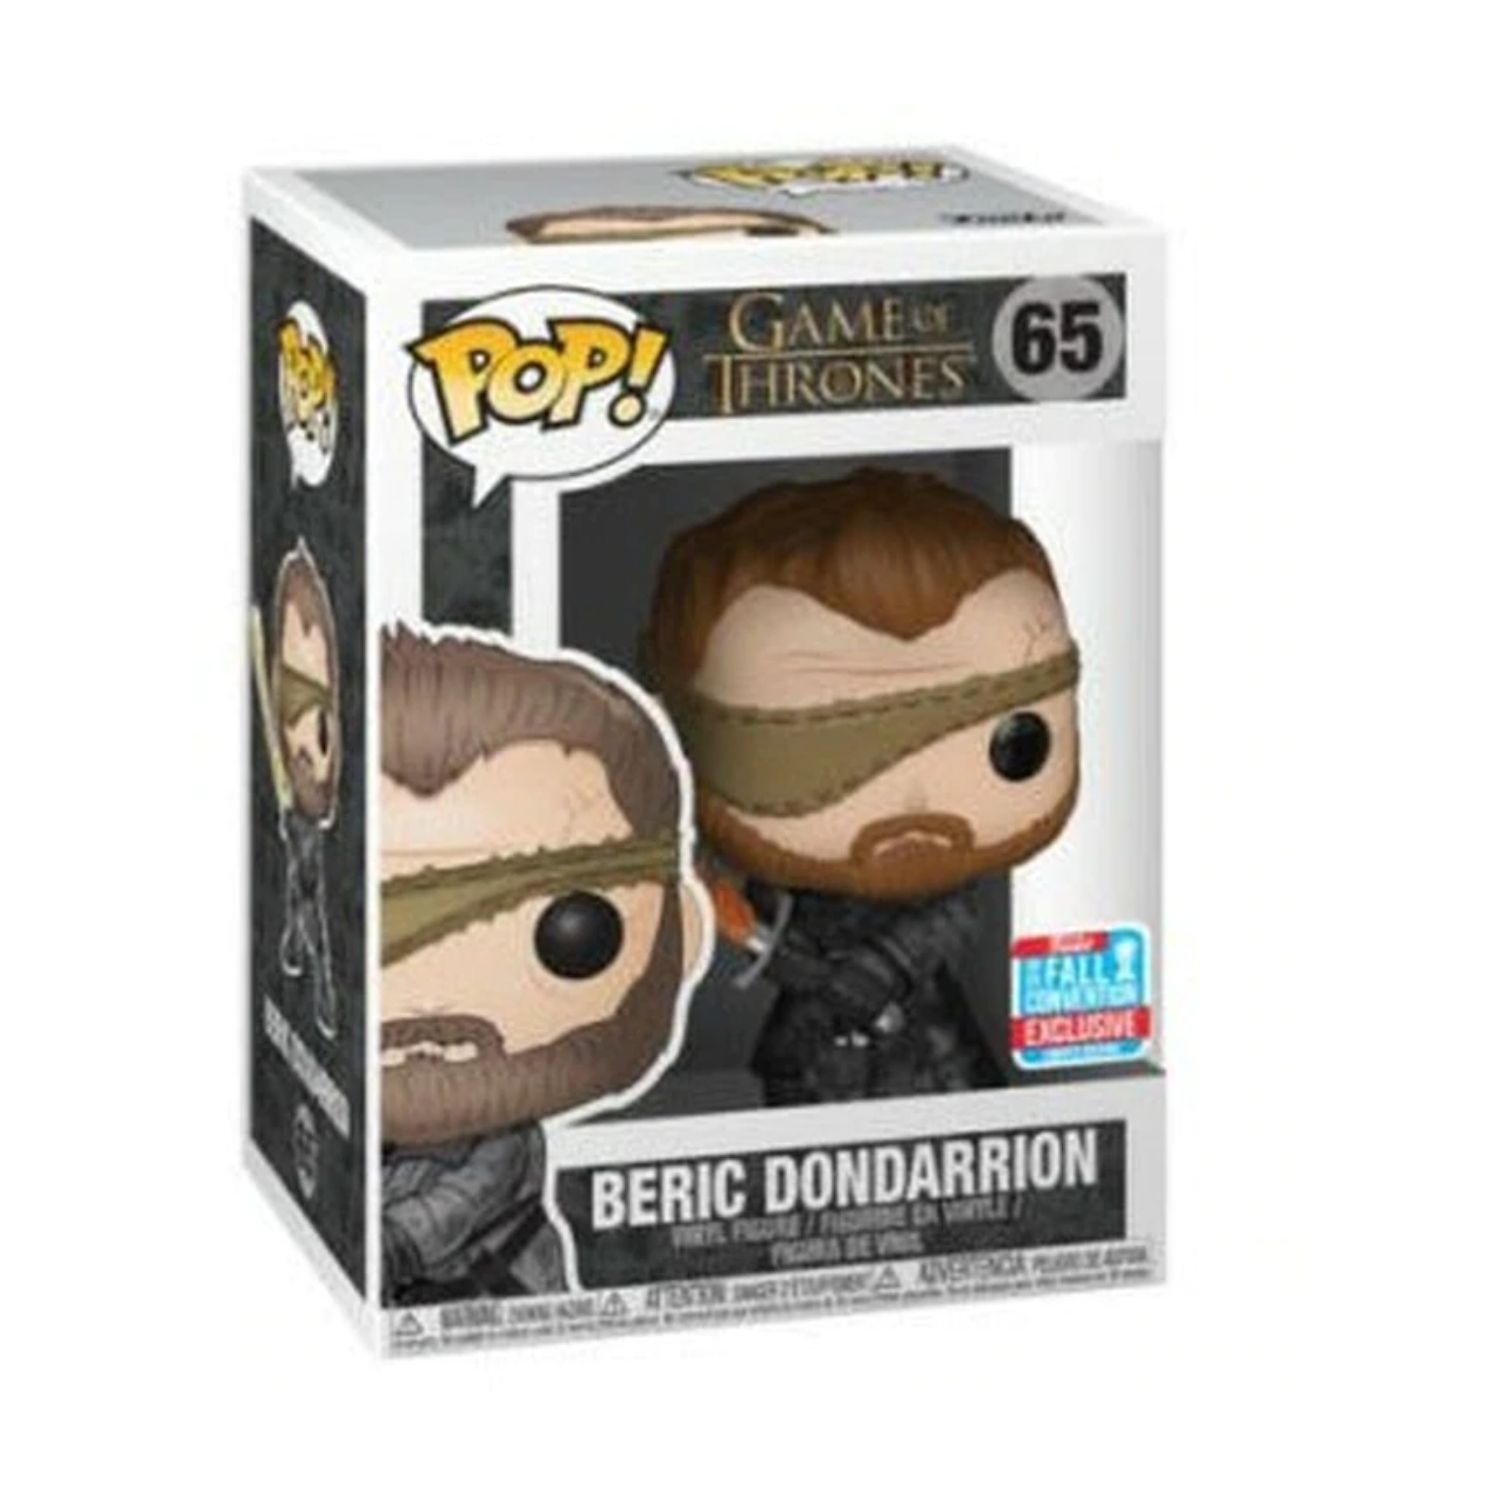 Funko Pop Beric Dondarrion #65 Game of Thrones NYCC 2018  - Game Land Brinquedos